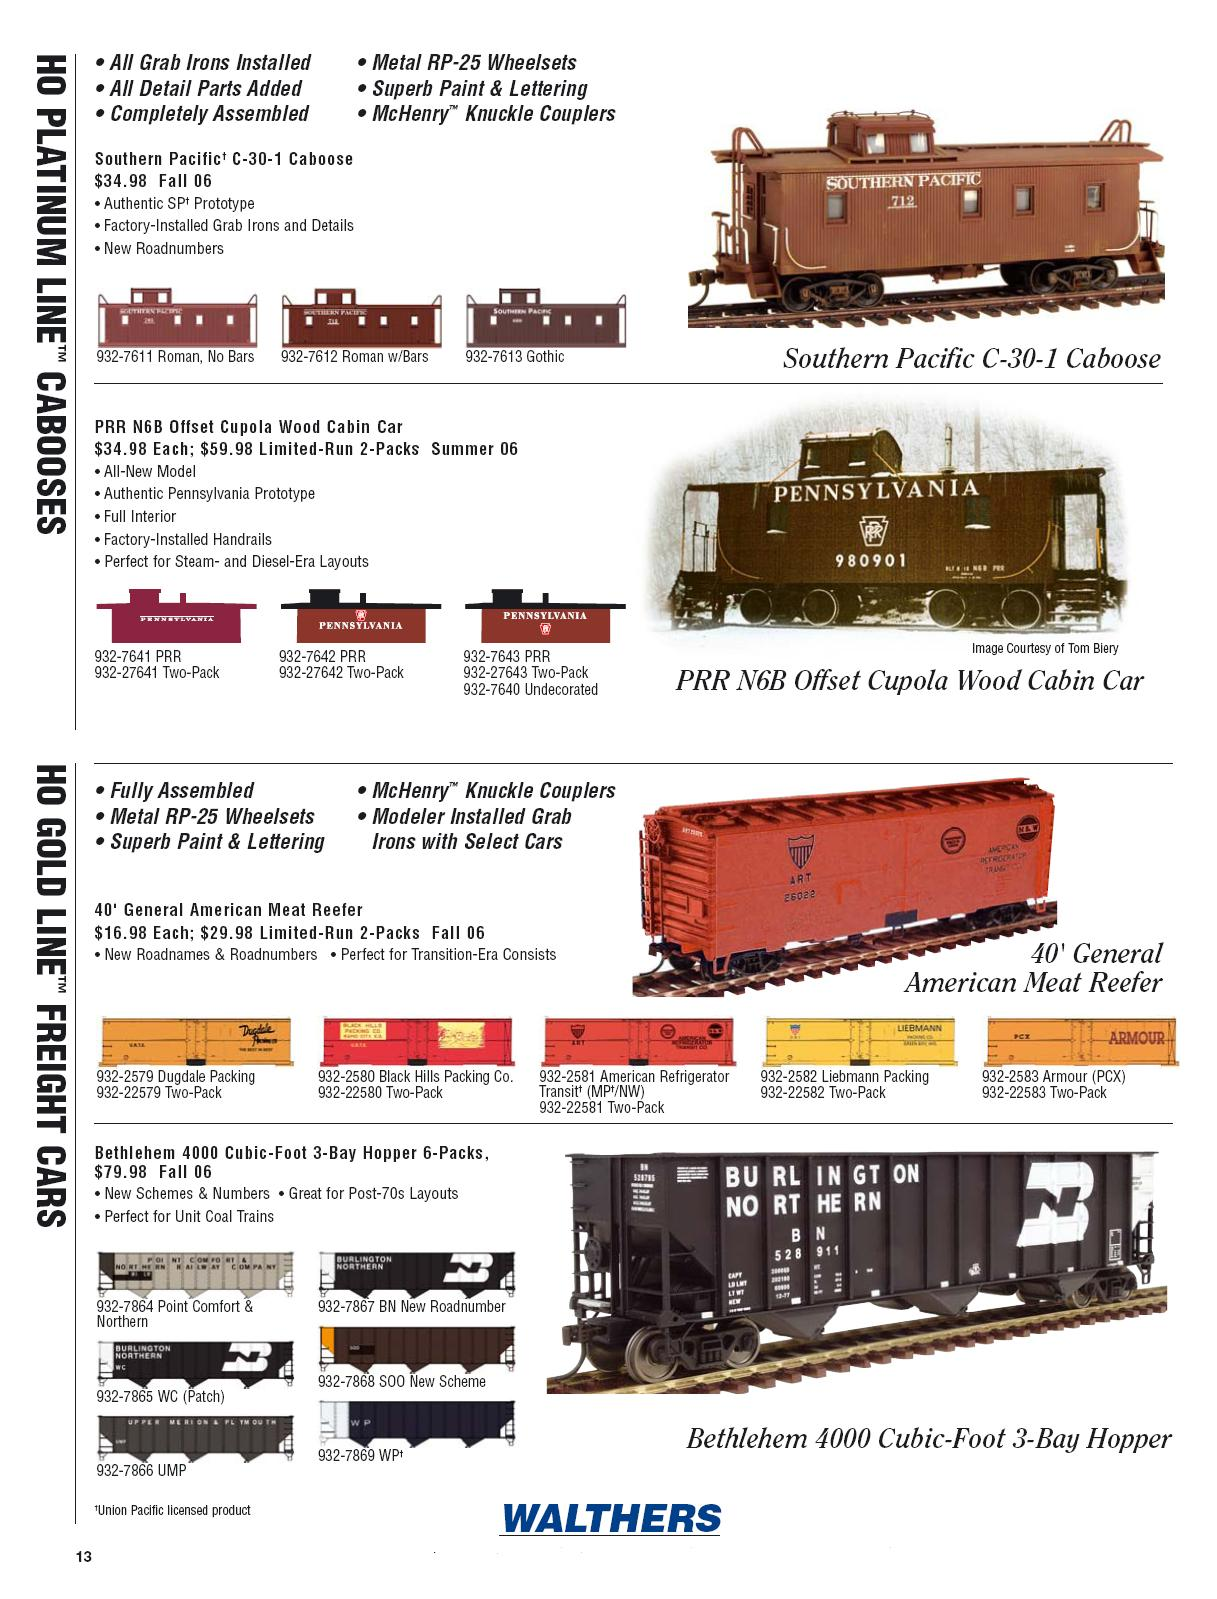 Walthers 2006 Cataloge Passenger page 5